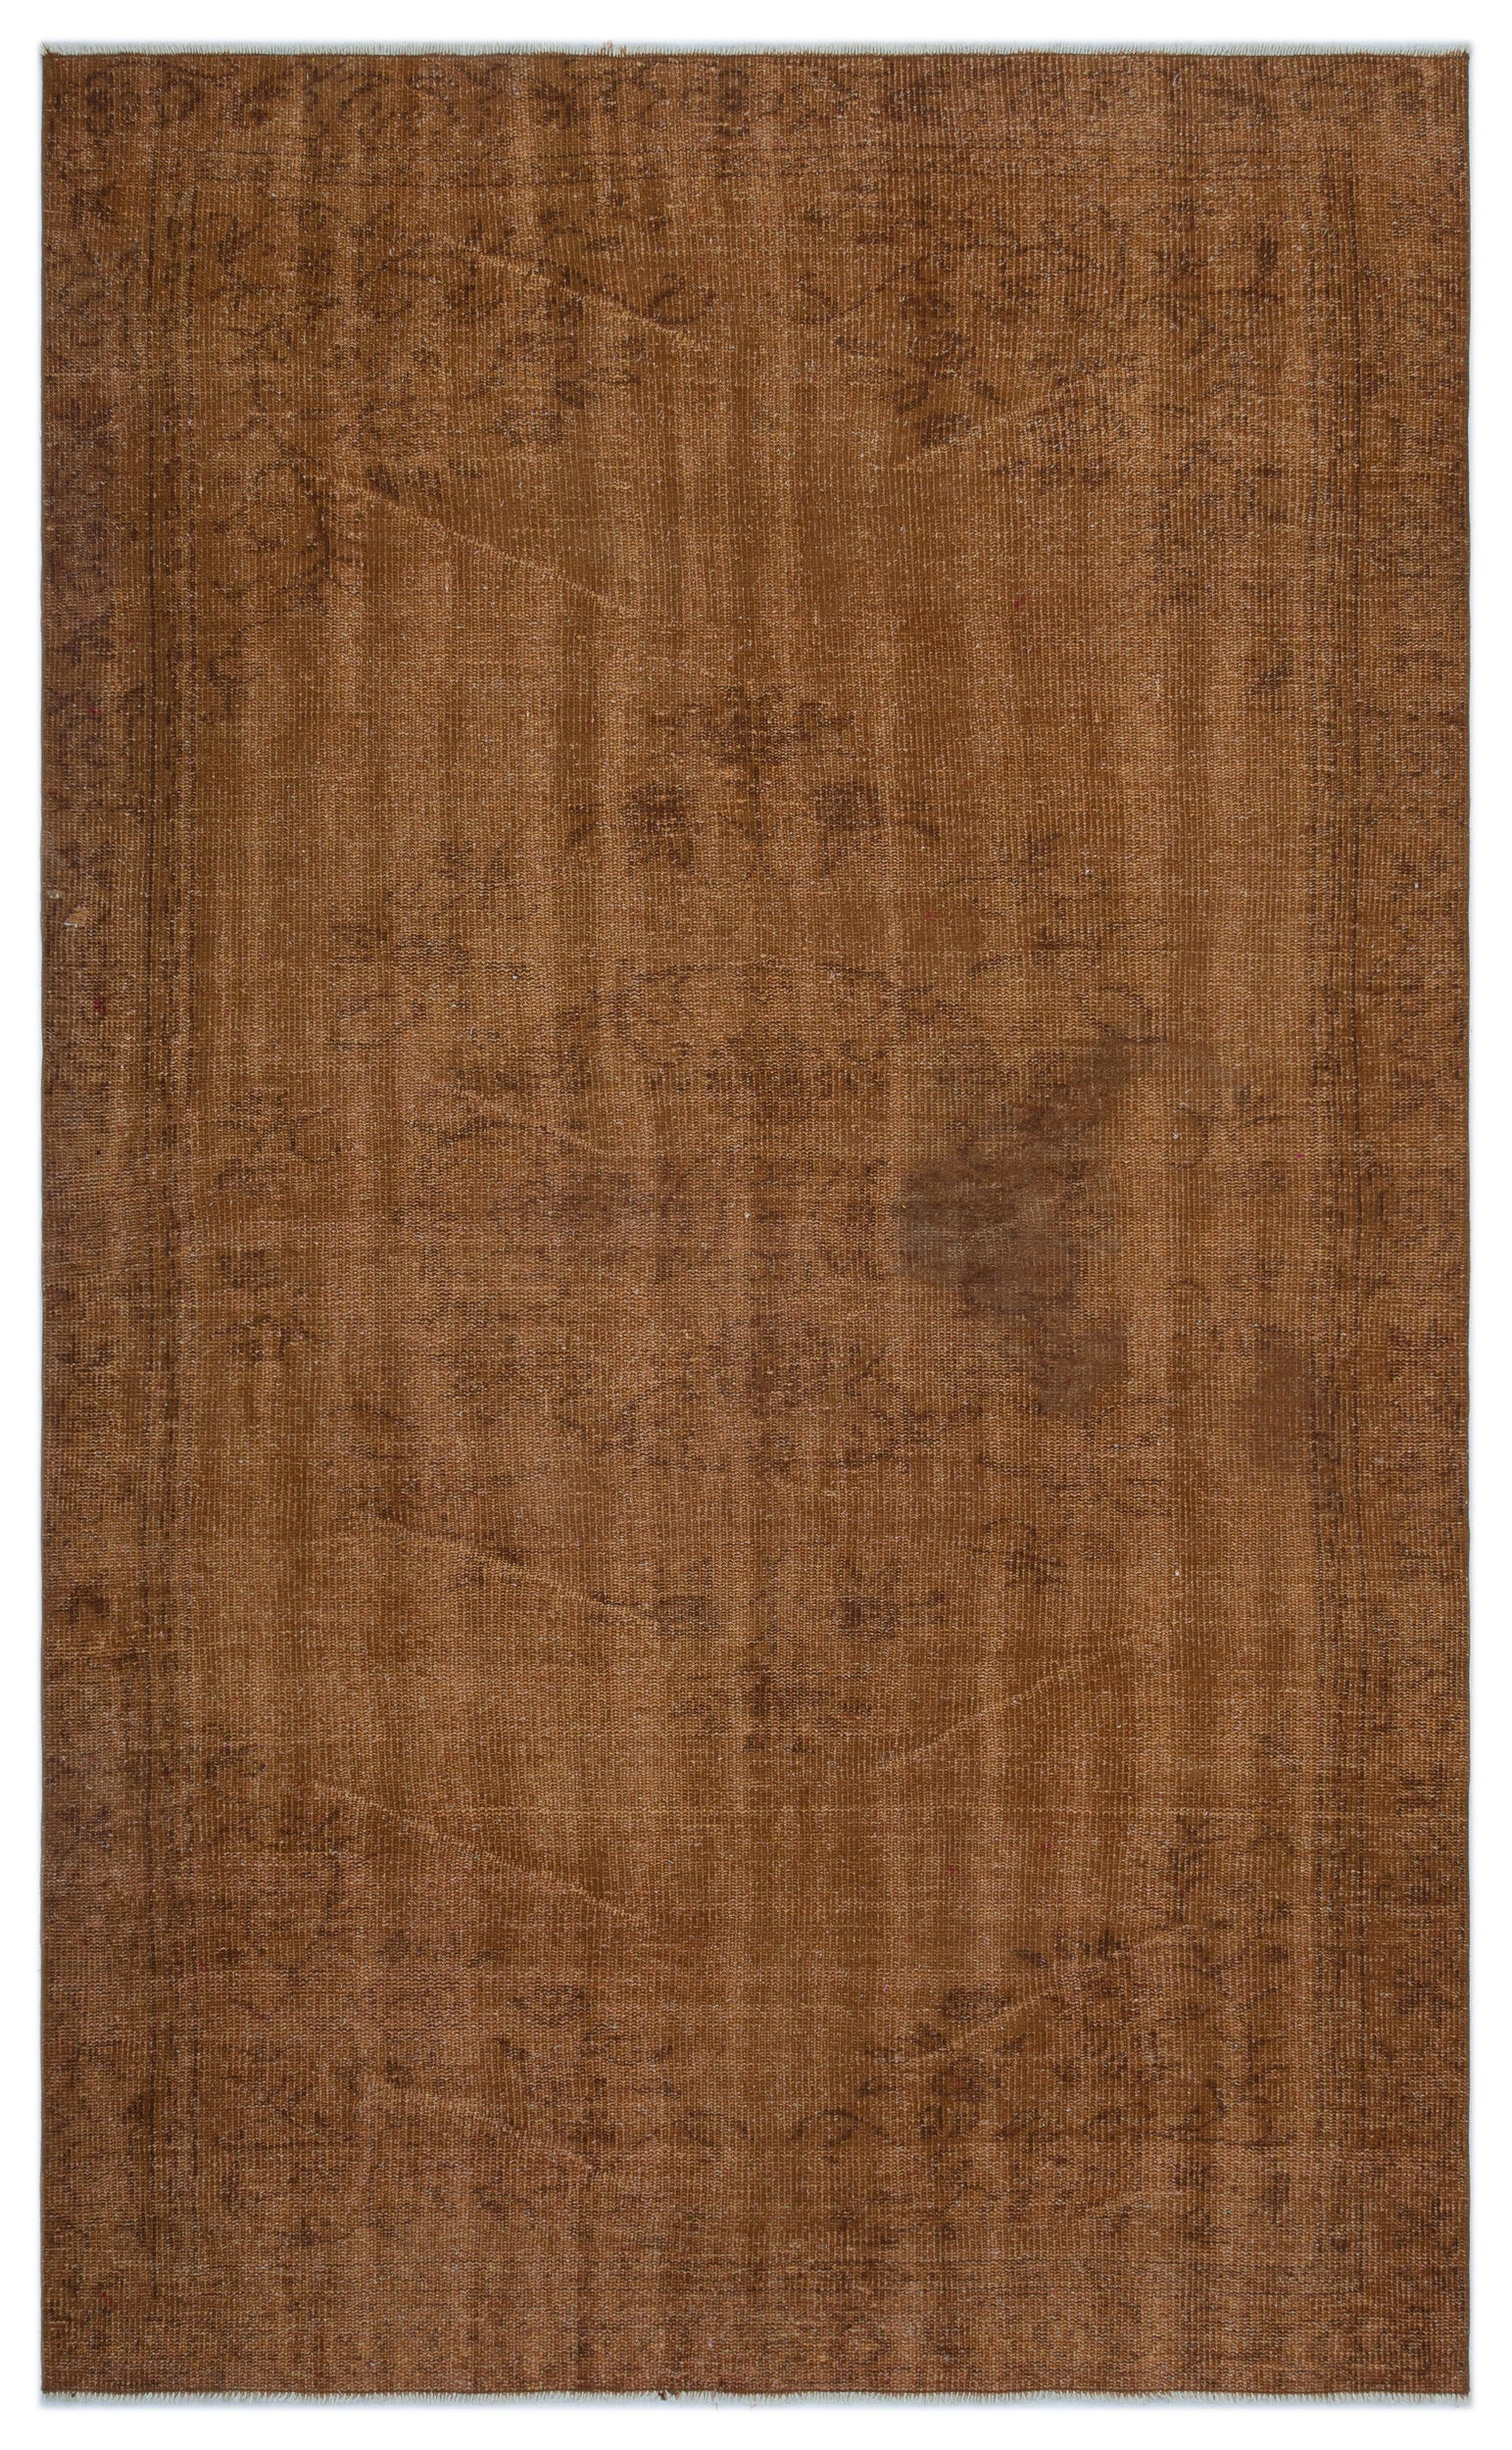 Brown Over Dyed Vintage Rug 5'6'' x 9'1'' ft 168 x 276 cm